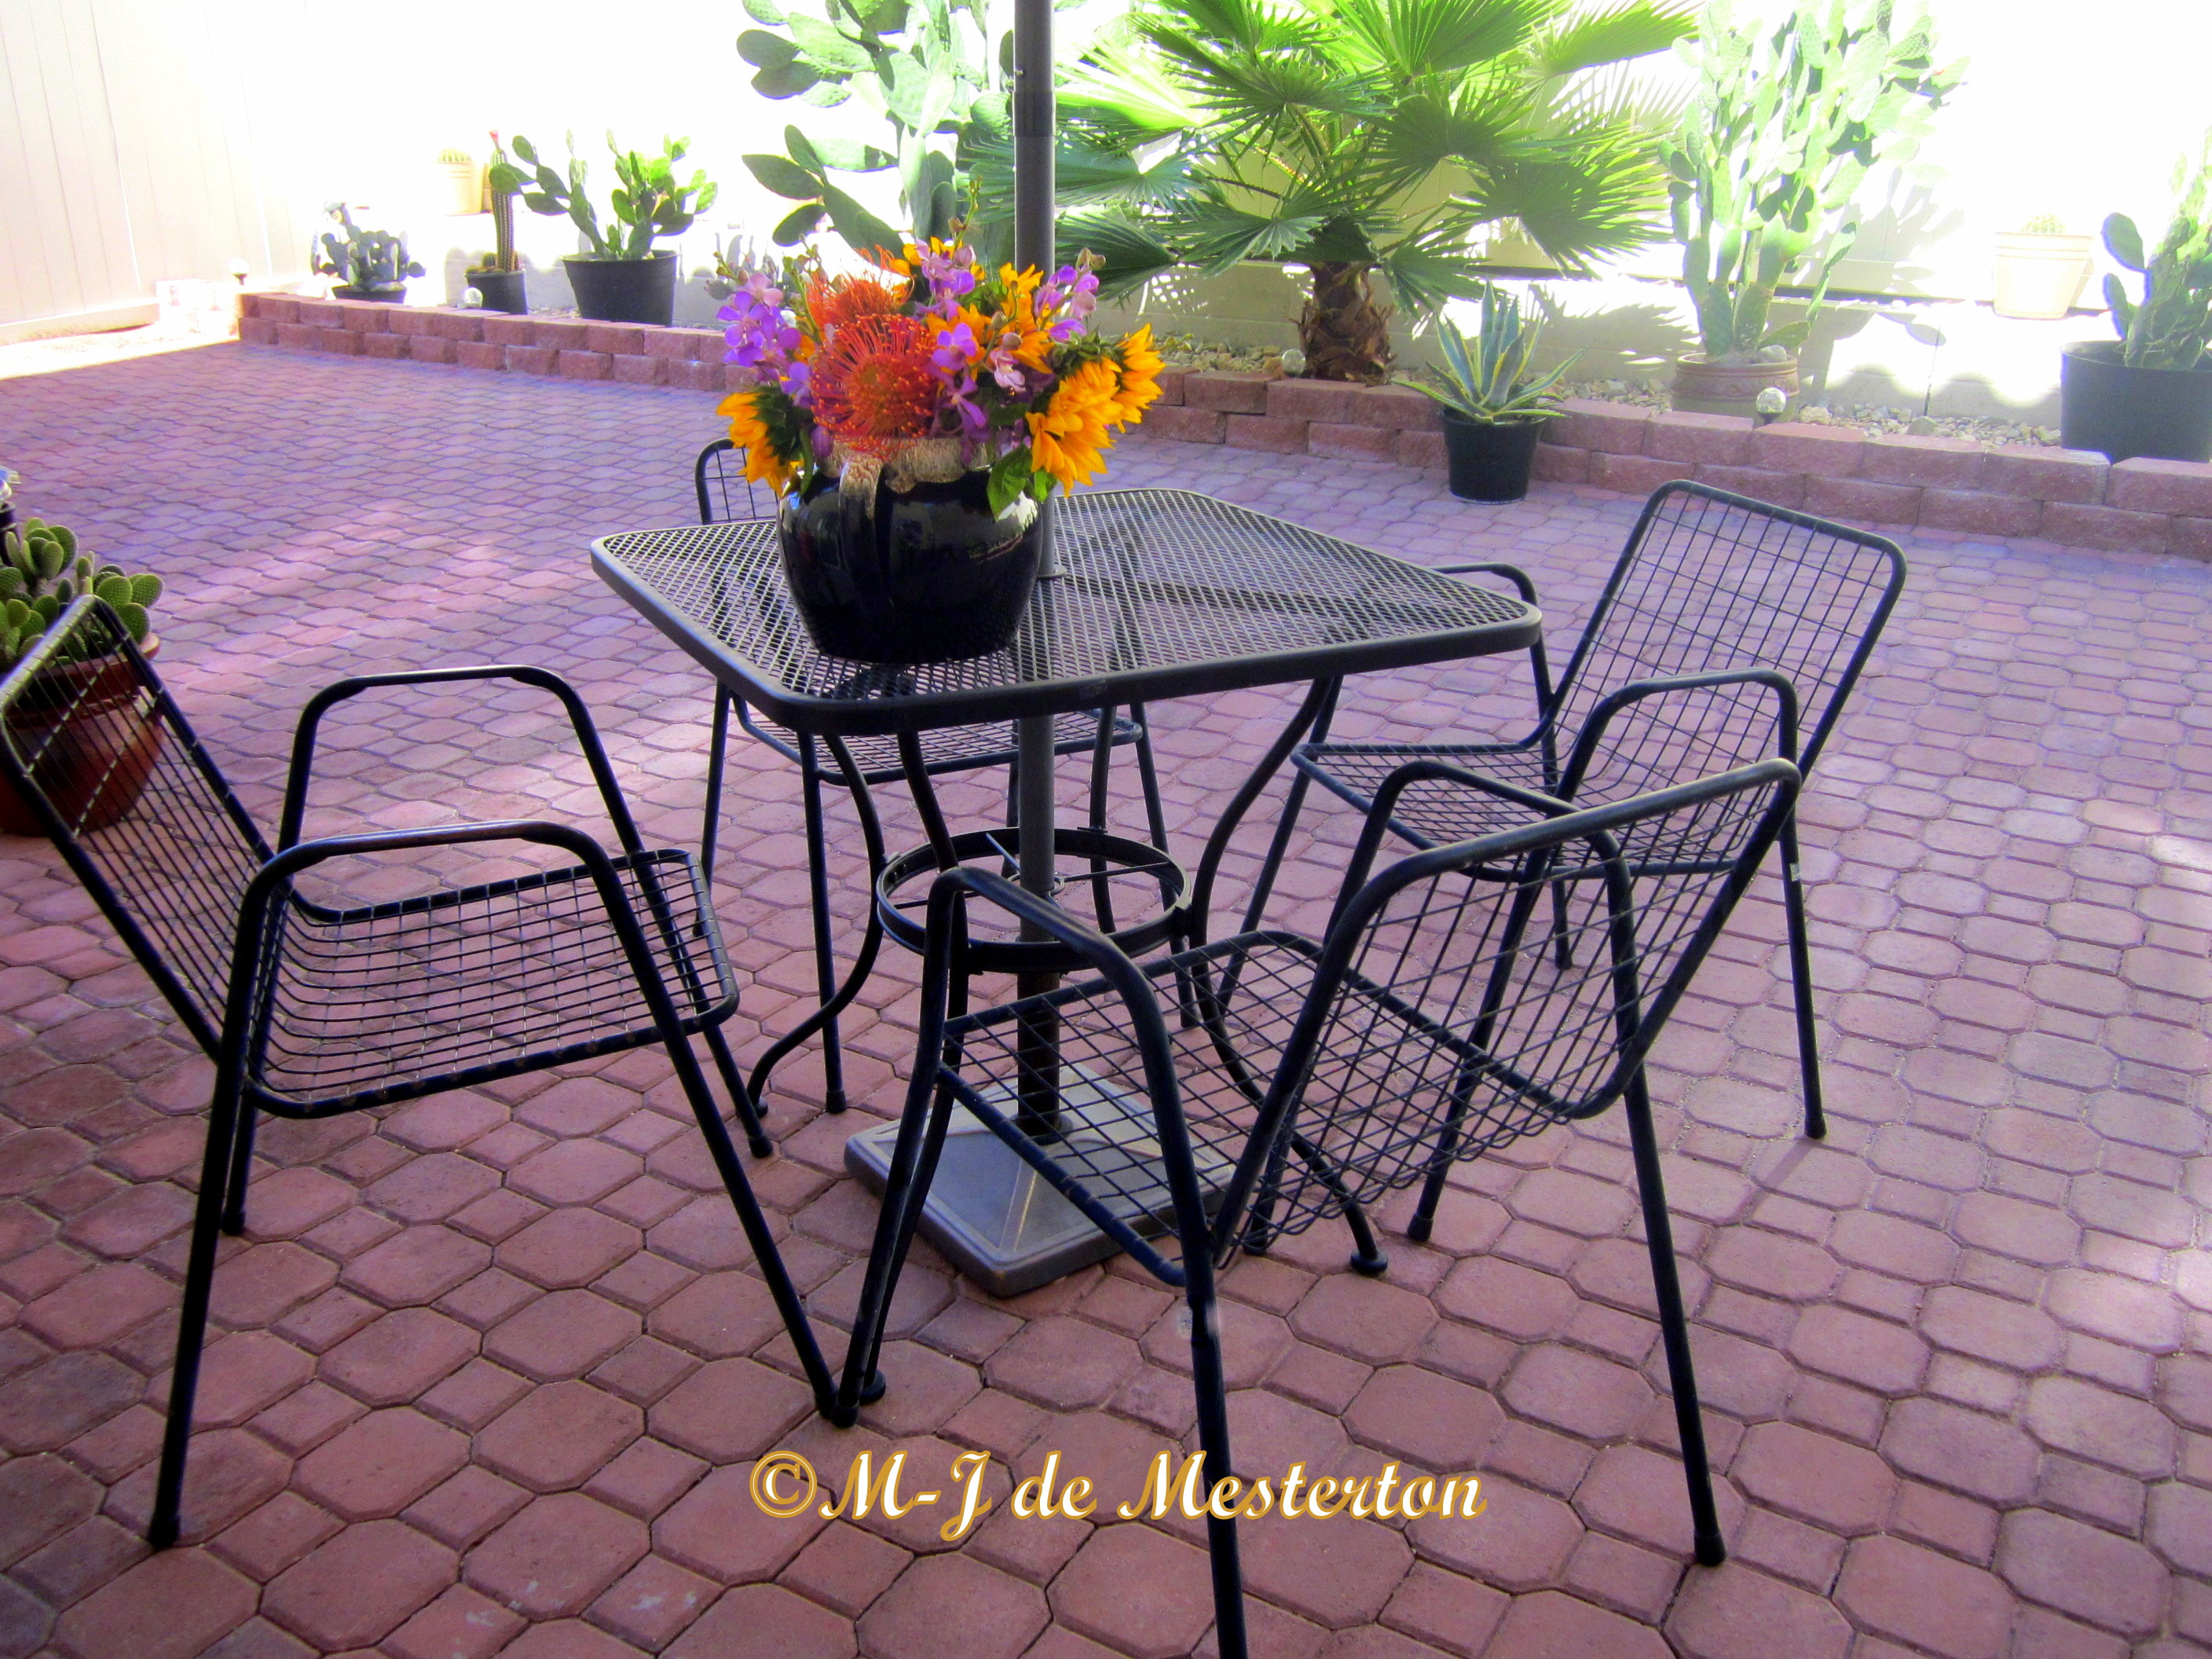 Garden furniture that stays put in the wind is made from lightweight metal with a wide-open mesh. So, instead of the wind blowing over your chairs, it passes right through them. ©M-J de Mesterton 2016